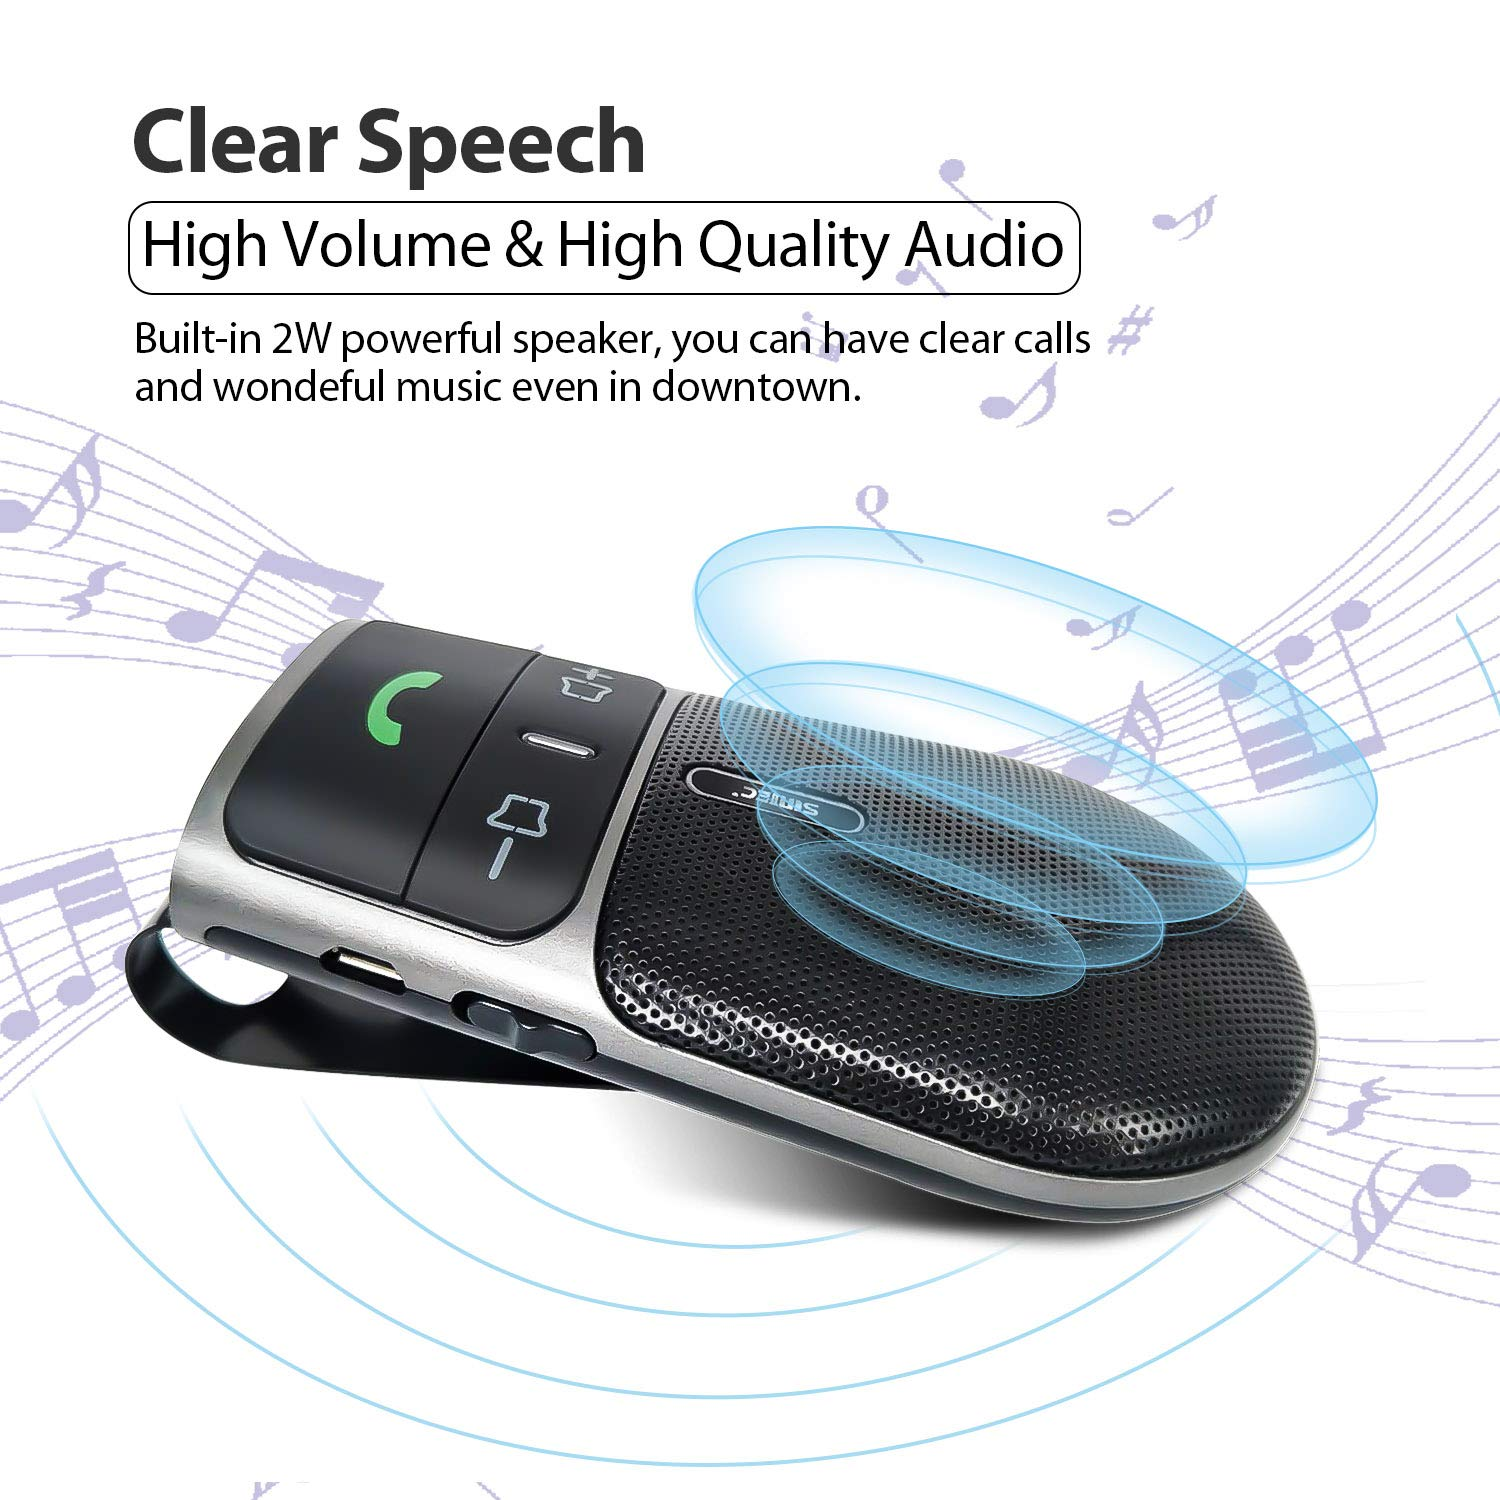 2019 SUNITEC BC920 Bluetooth Hands Free Car Kit, Connects with Siri & Google Assistant, Auto On Off, Handsfree Speakerphone Wireless in Car, 2W Powerful Speaker, Dual Link Connectivity & Visor Clip by Sunitec (Image #3)